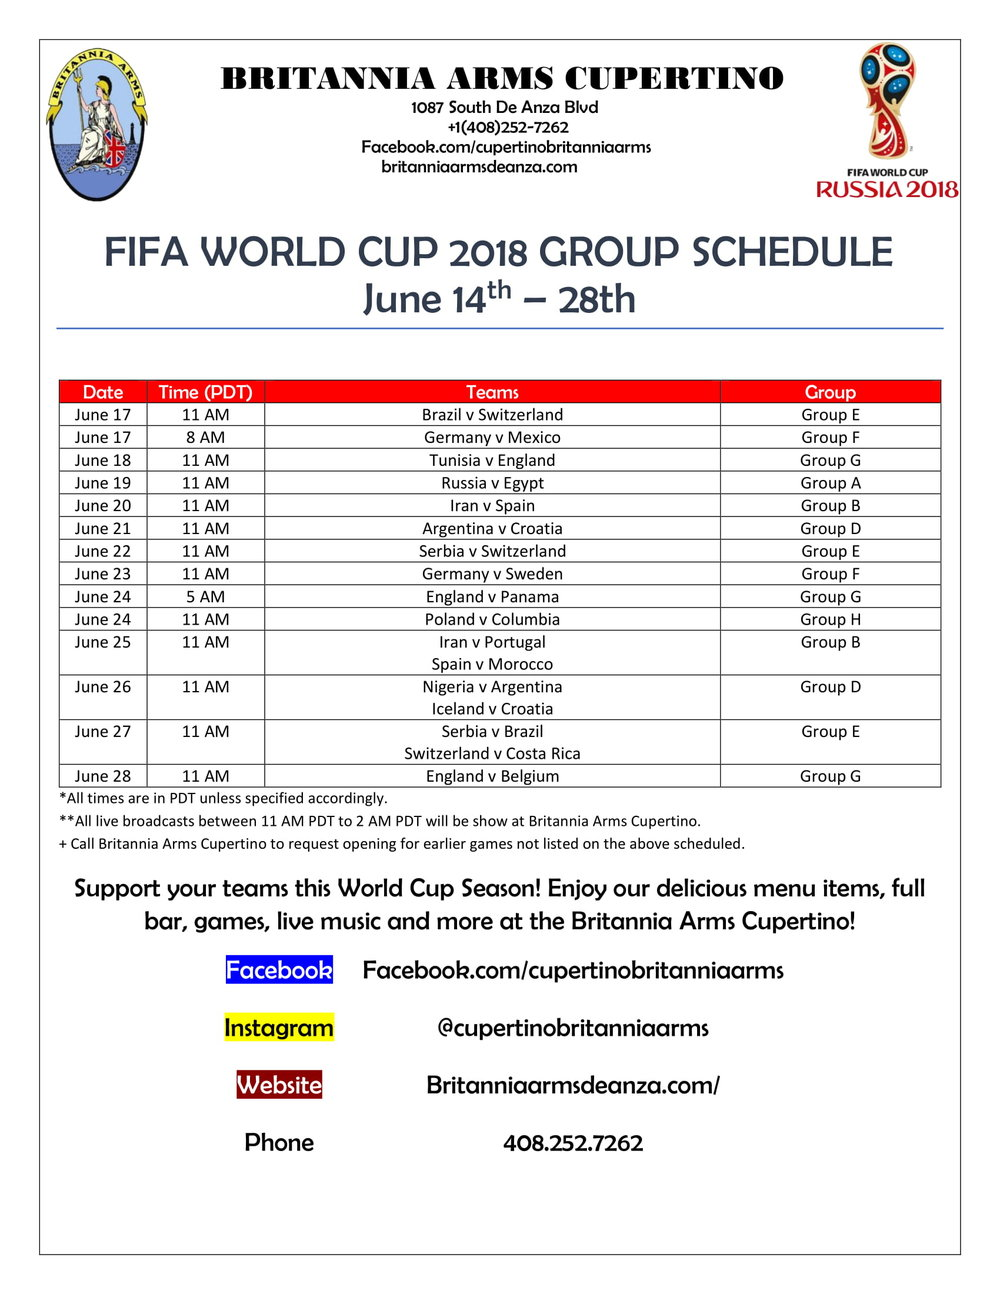 Fifa World Cup 2018 Britannia Arms Schedule-1.jpg